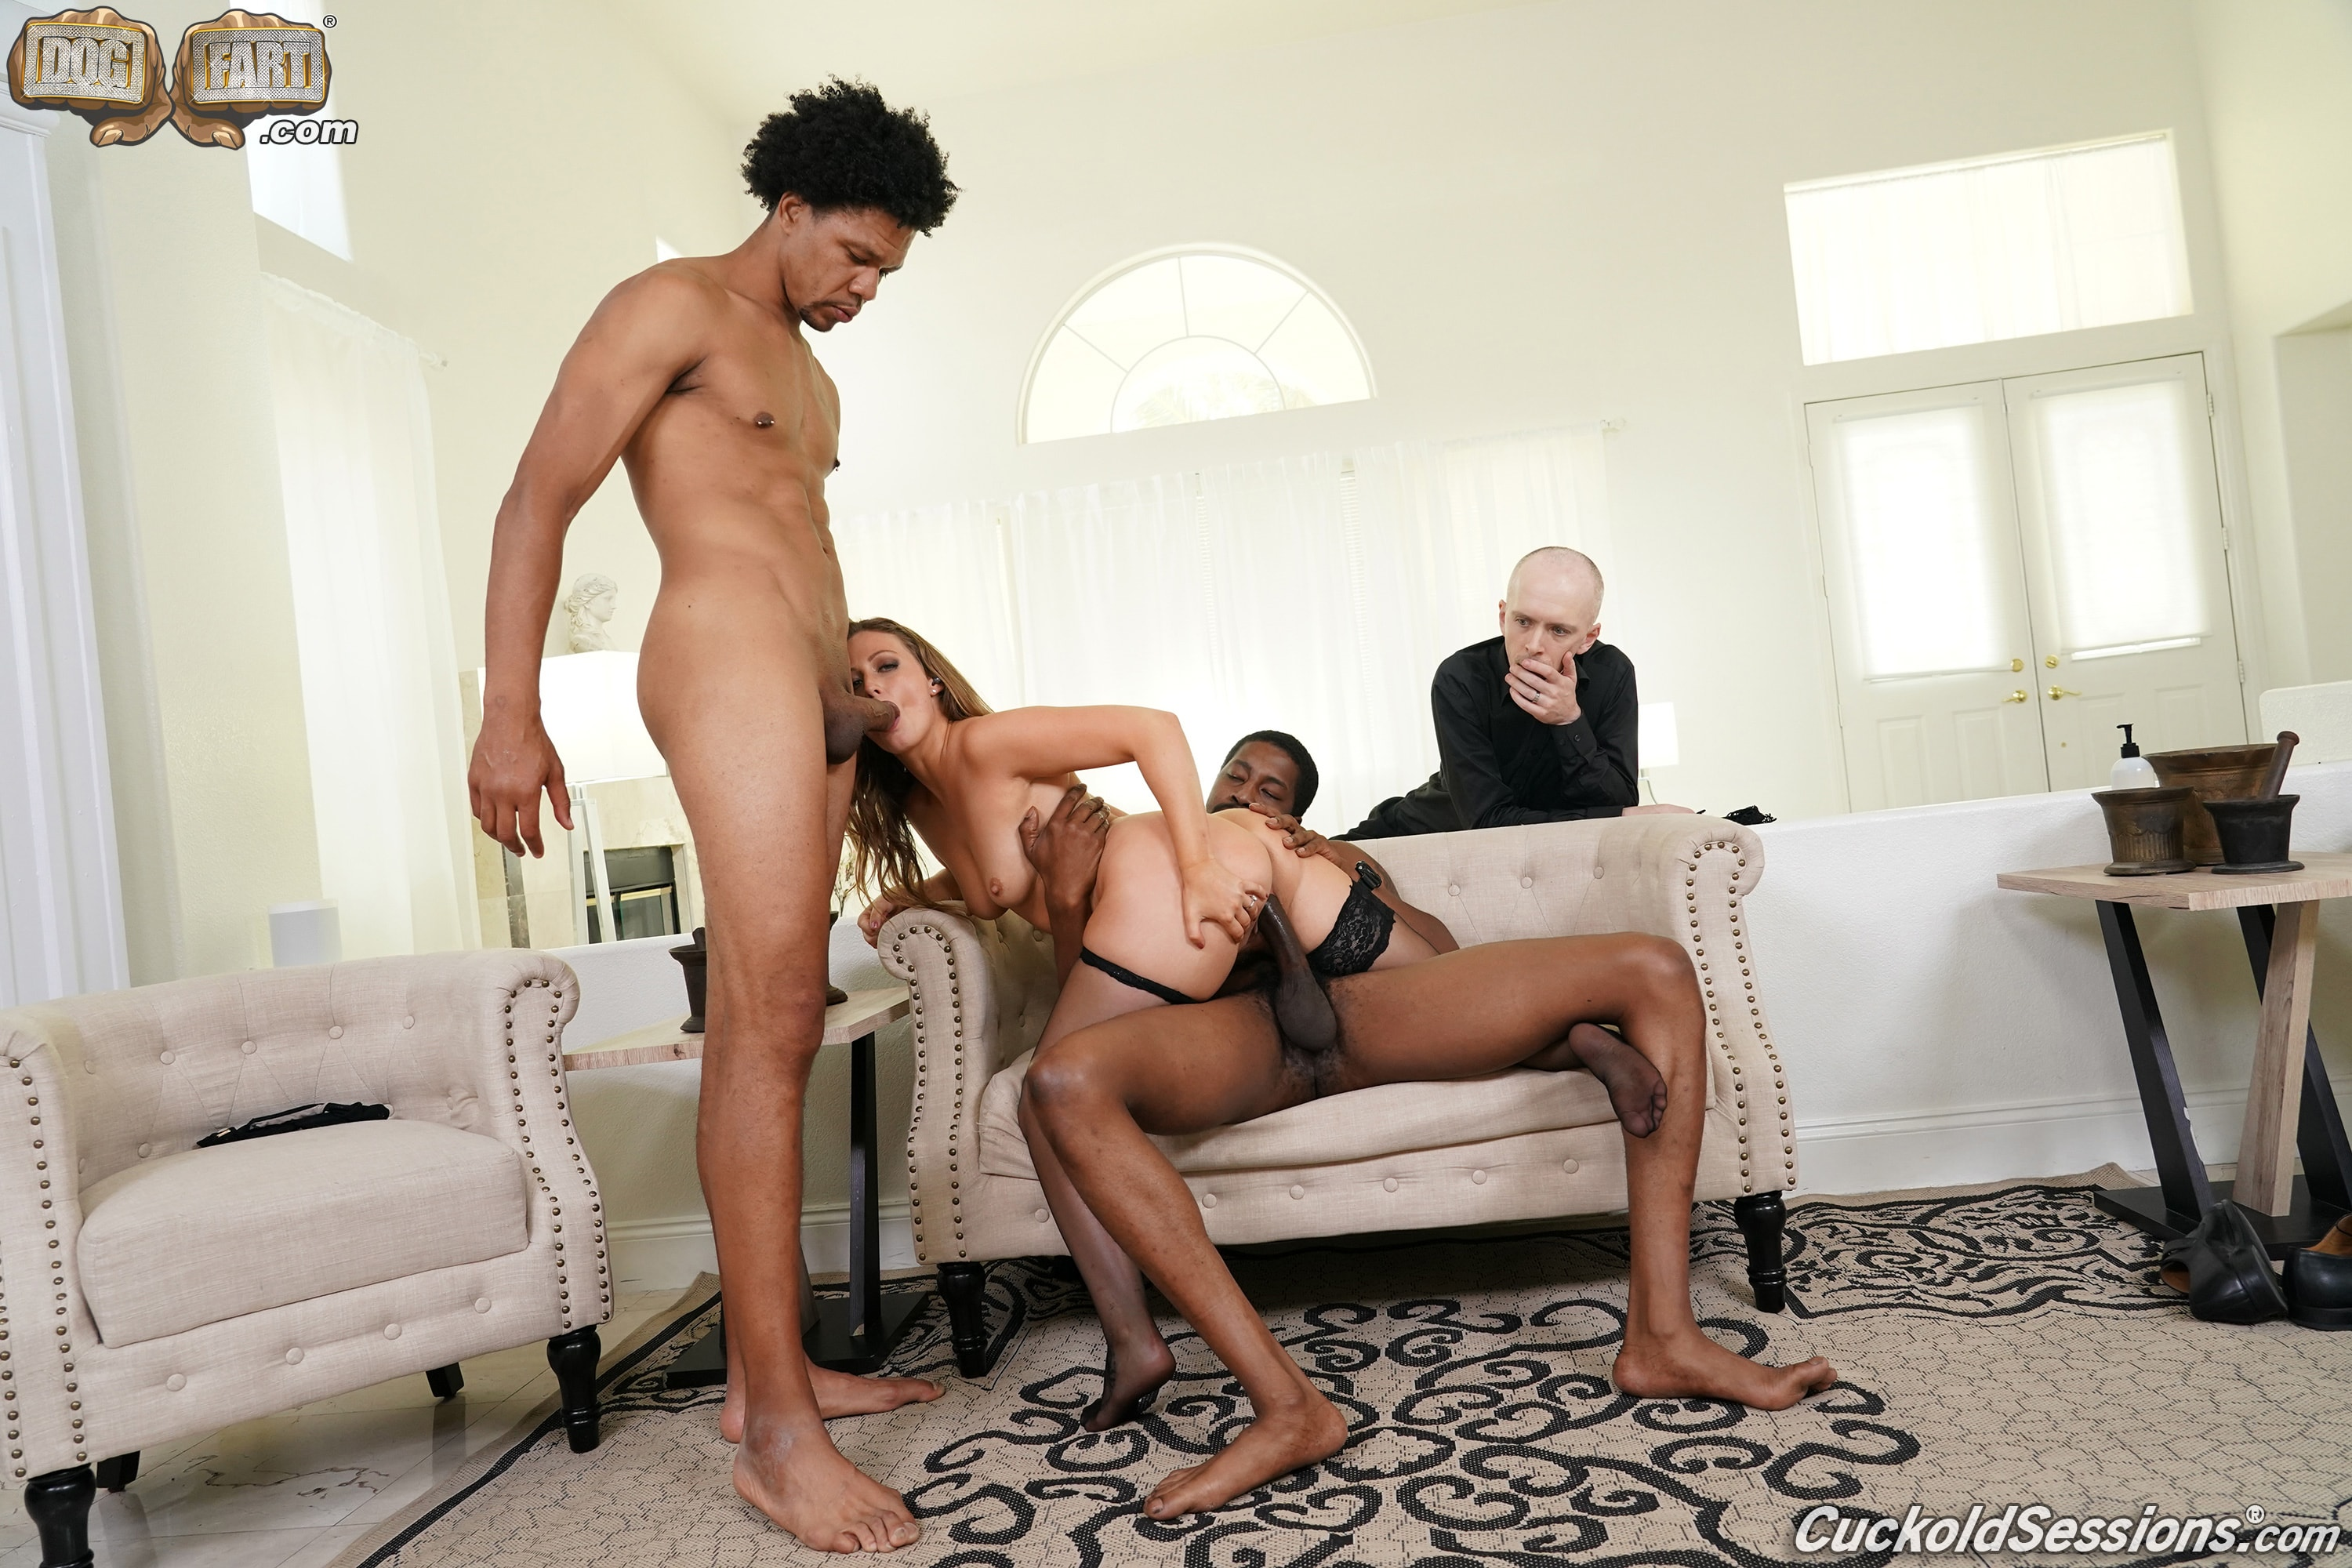 Dogfart '- Cuckold Sessions' starring Febby Twigs (Photo 16)